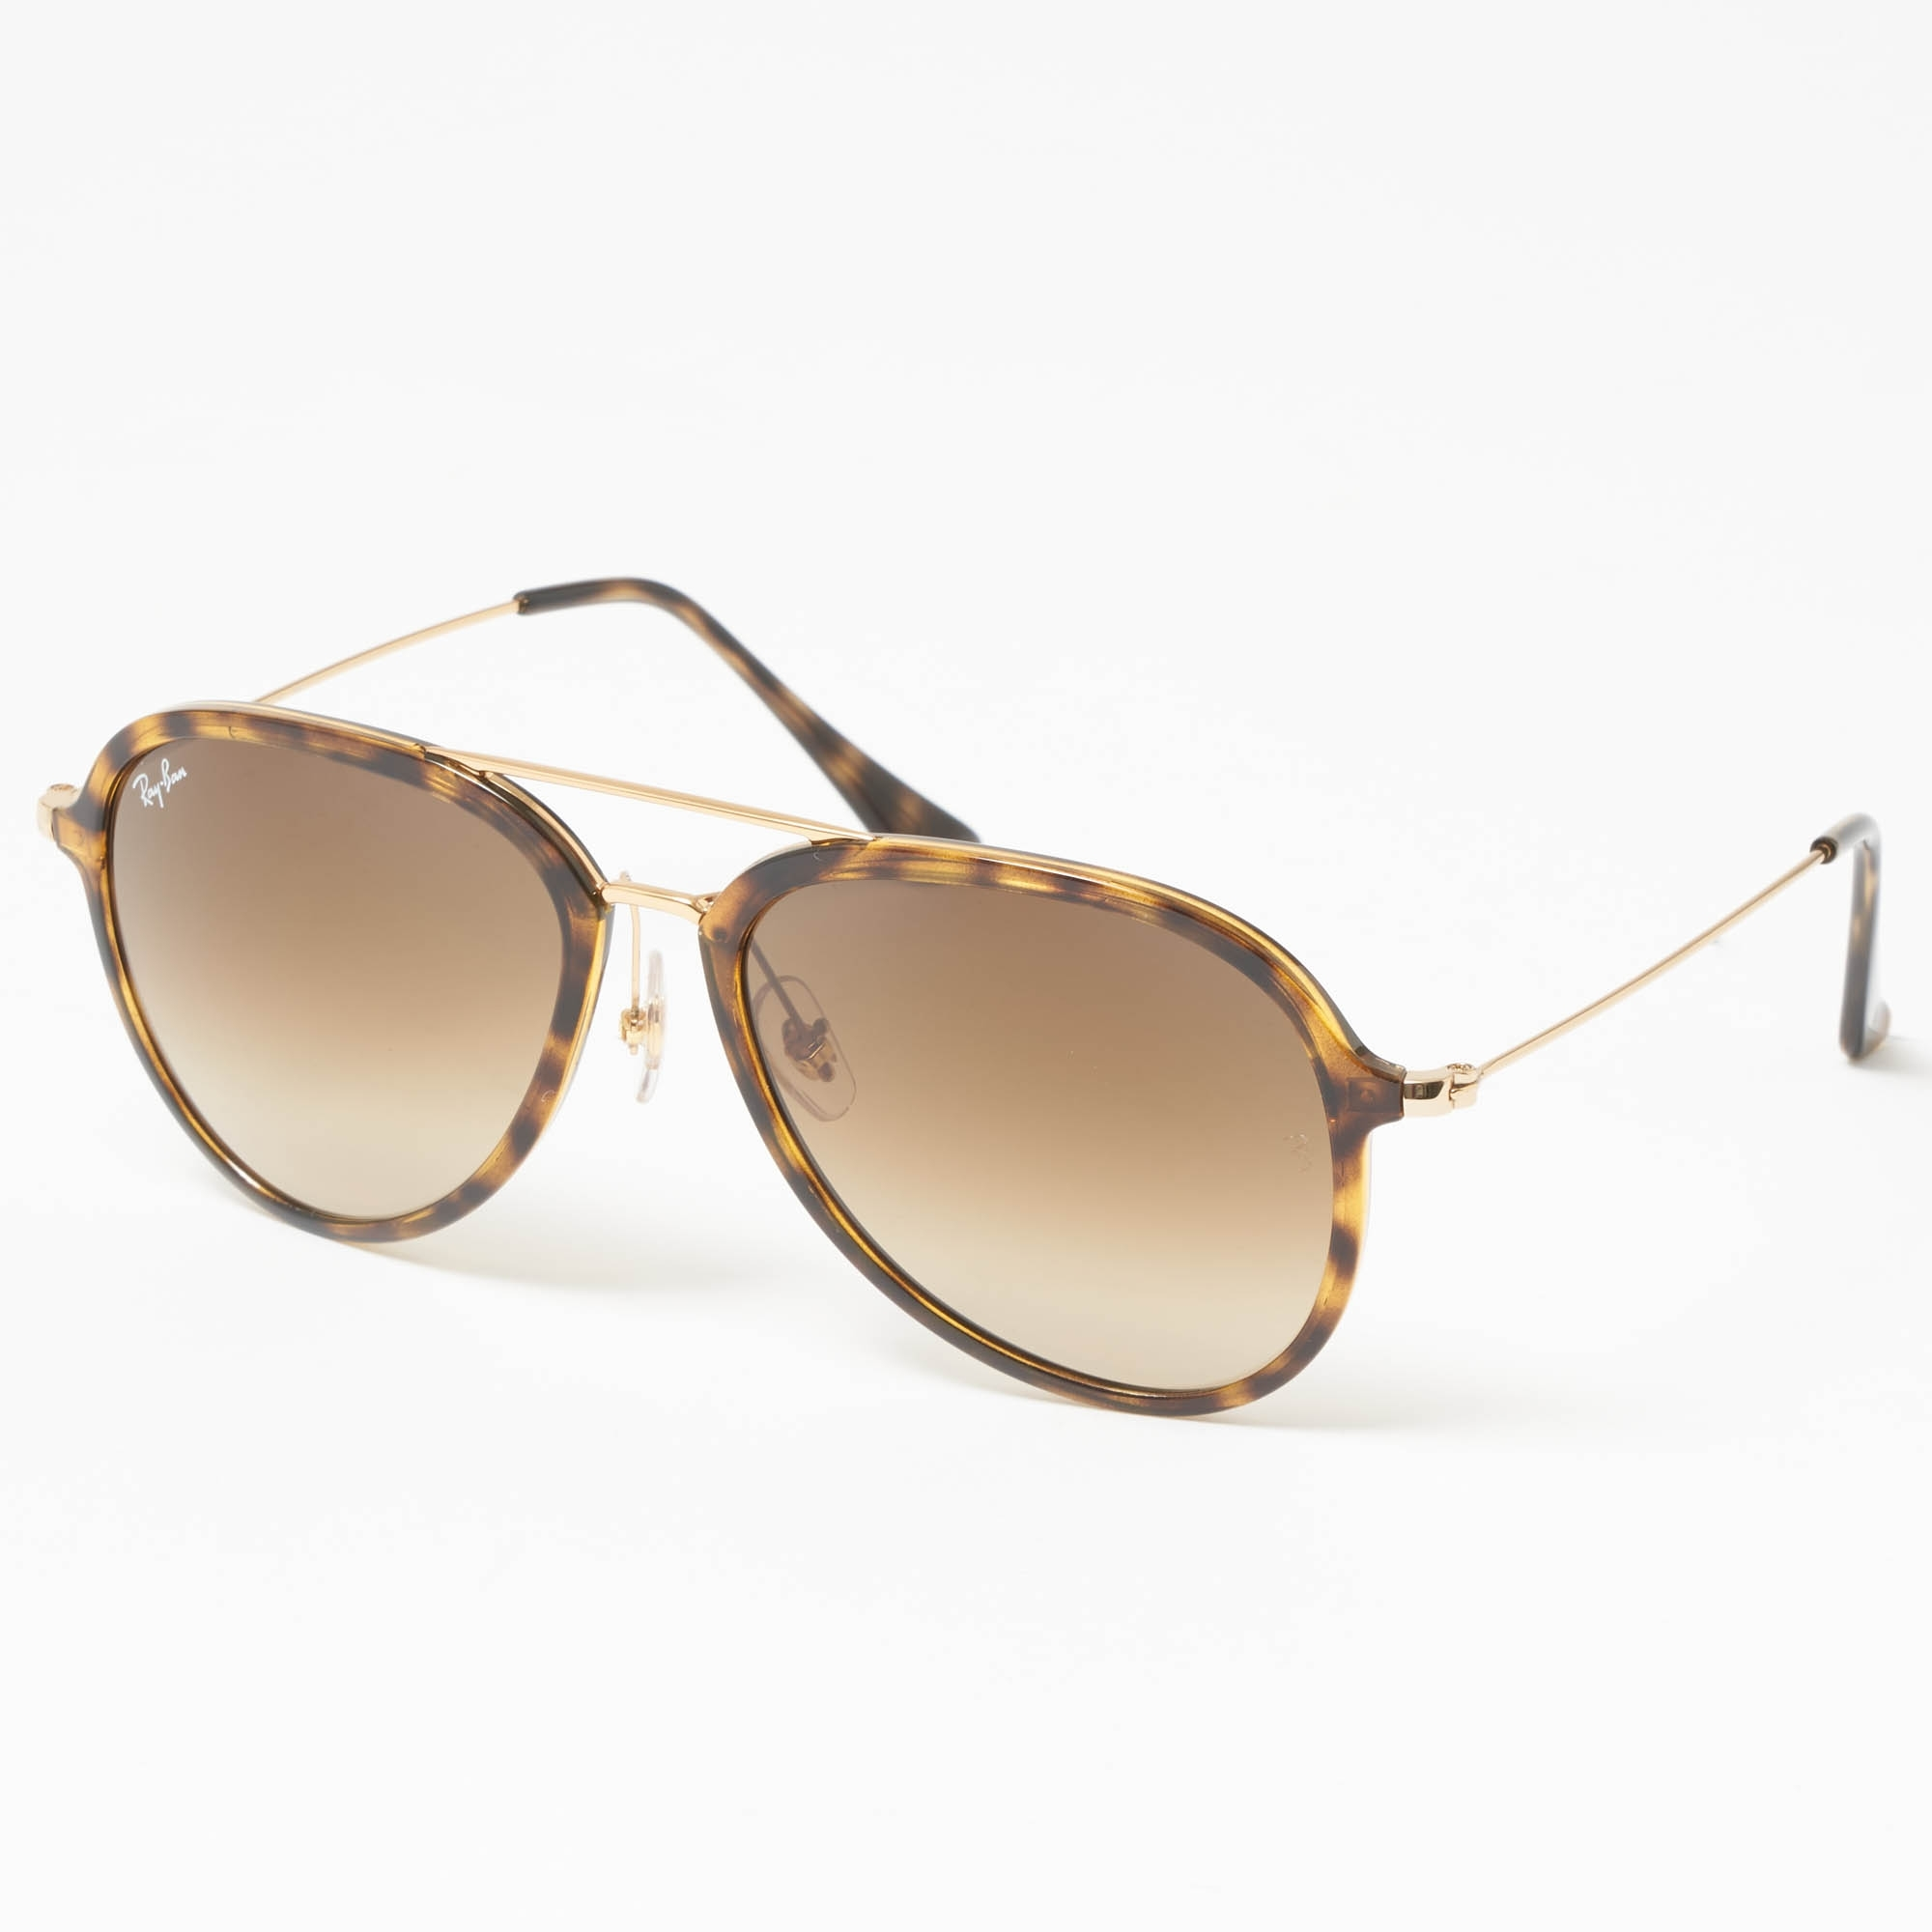 Tortoise RB4298 Sunglasses - Light Brown Gradient Lenses cfa99d884a